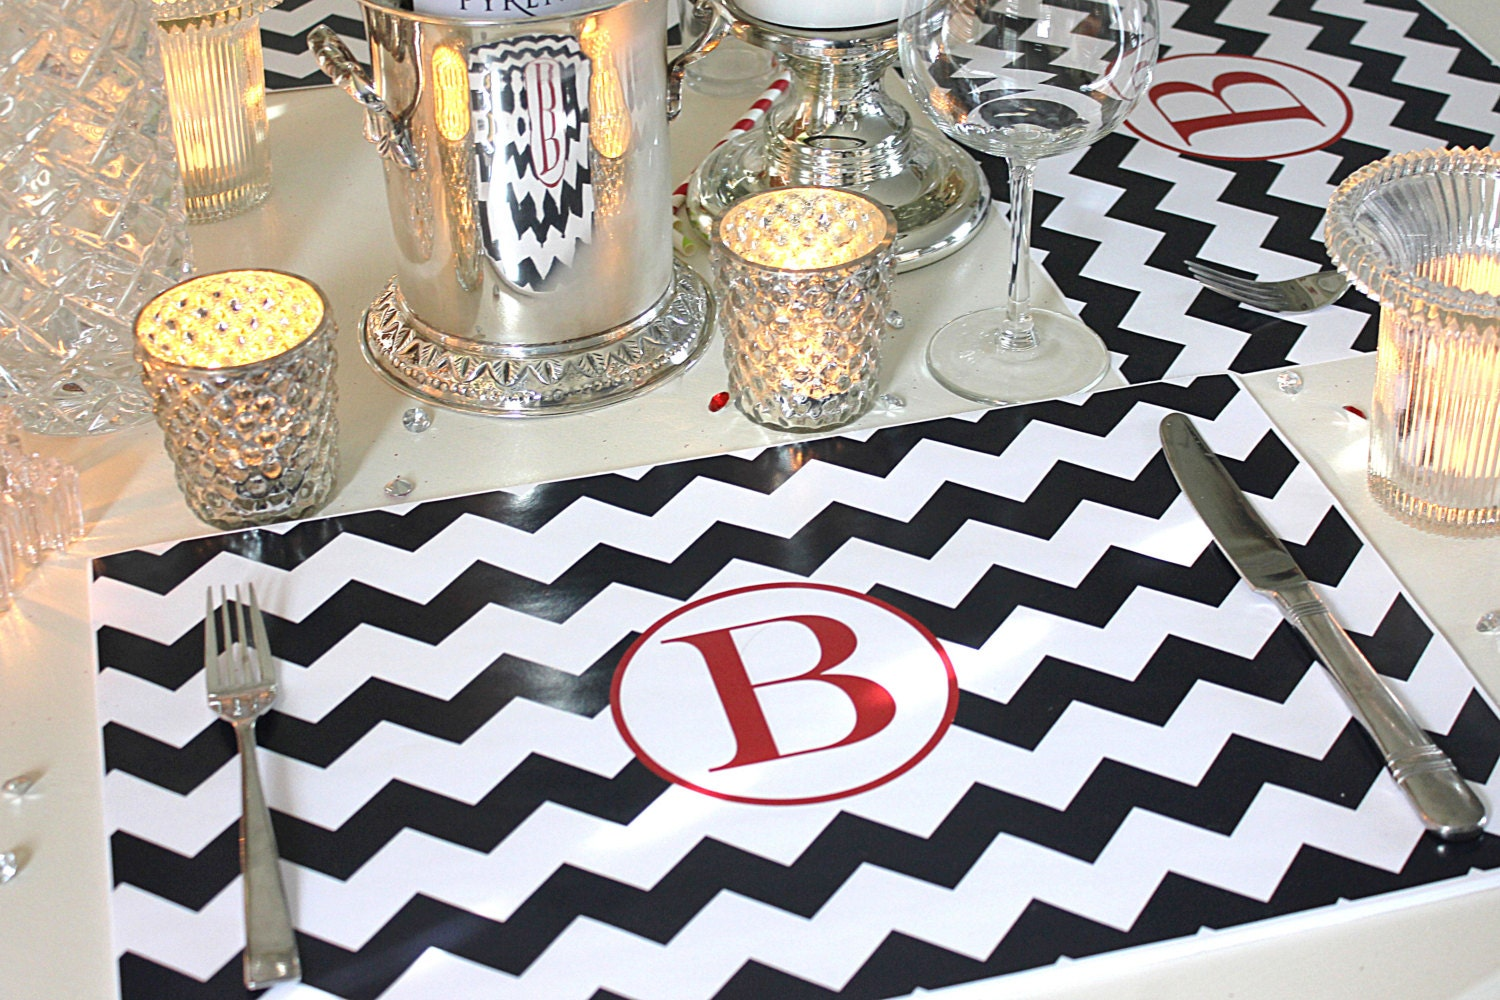 Custom note paper placemats